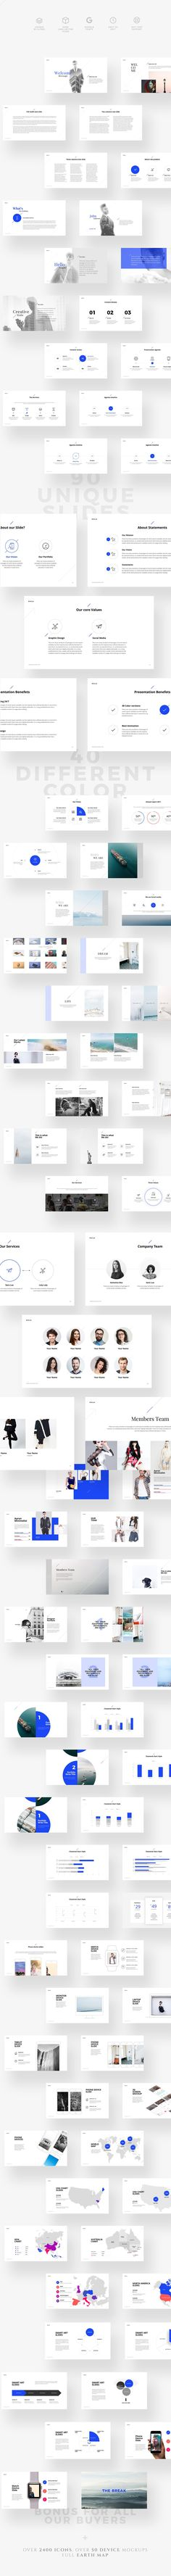 KULA Keynote Template by ShapeSlide on @creativemarket Modern, creative presentation templates with a great background and a lot of slides. Have an inspiration, grab some ideas or use directly the ready to use layout for your product, portfolio or business.